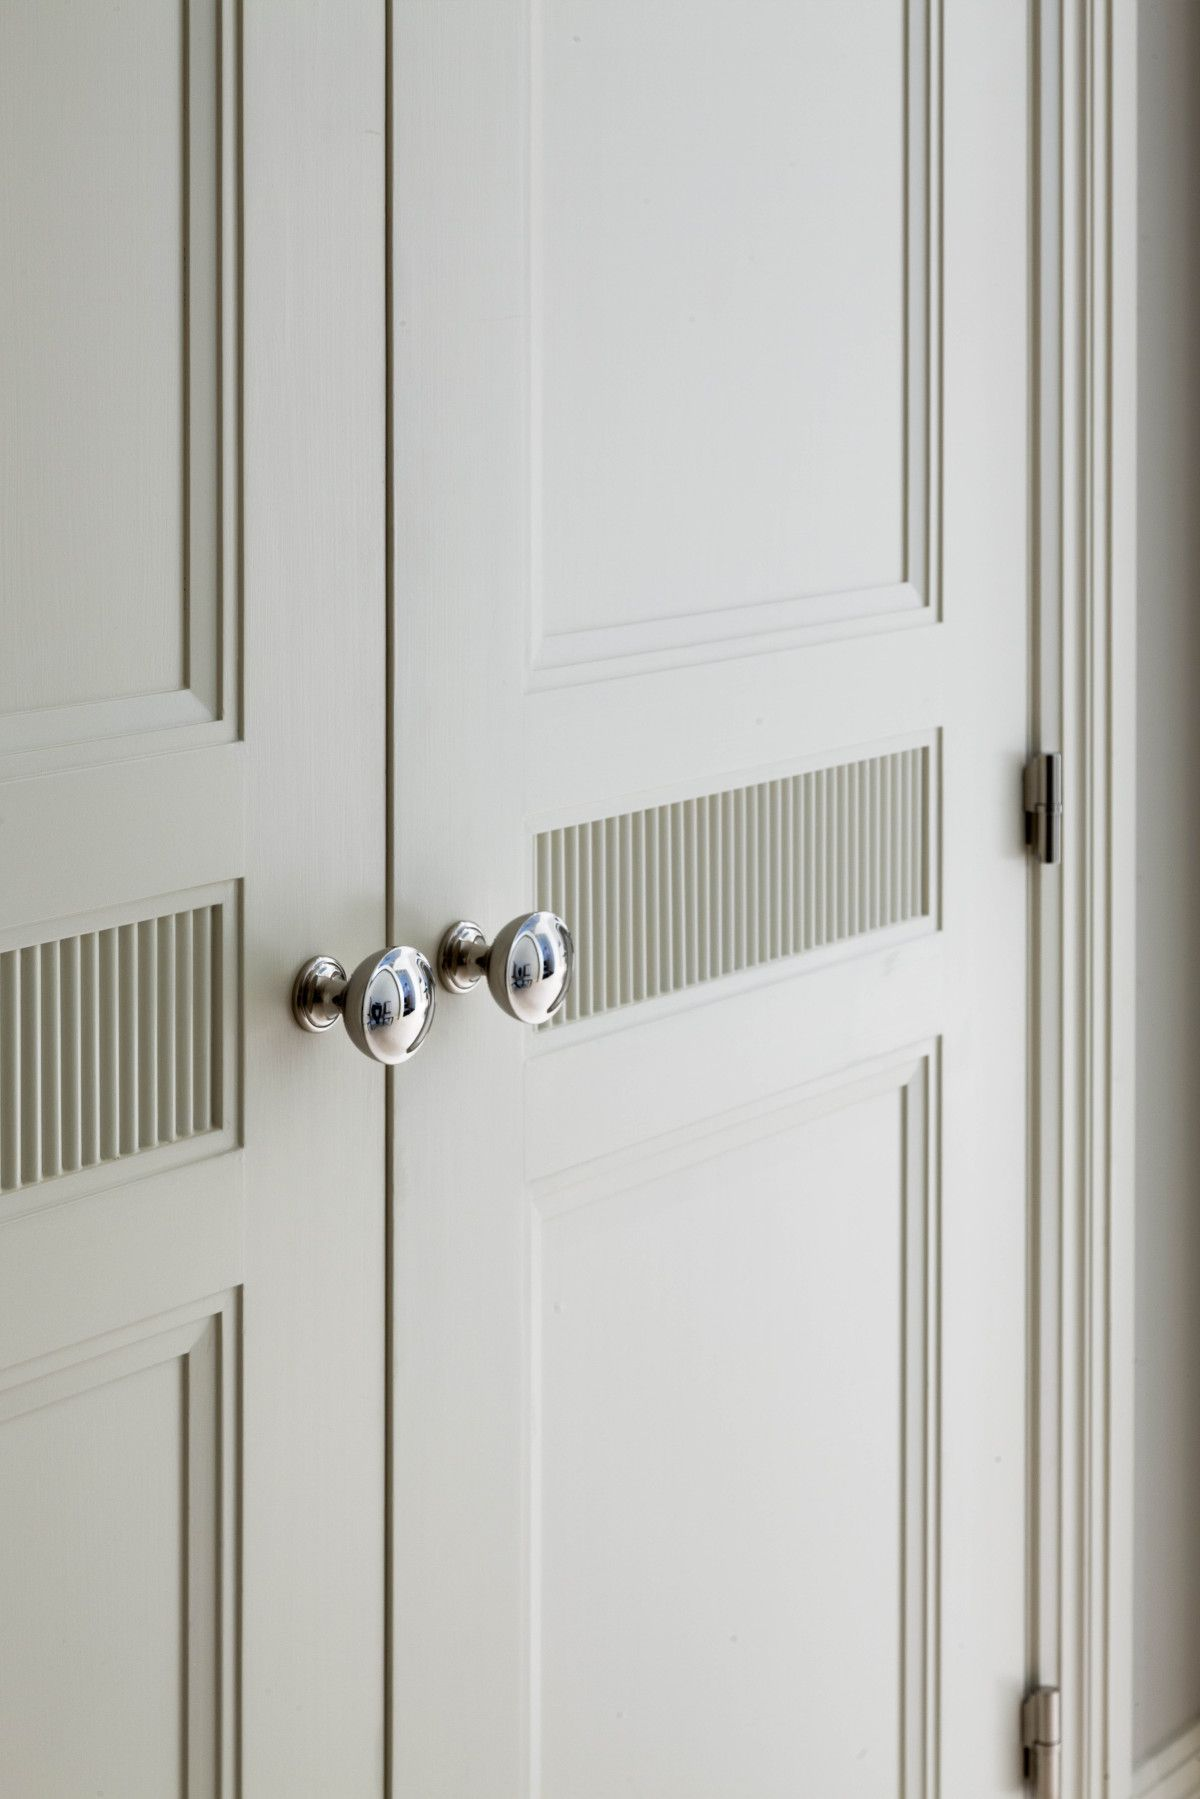 Pin by Erica Lindsay on hardware Elegant doors, Doors